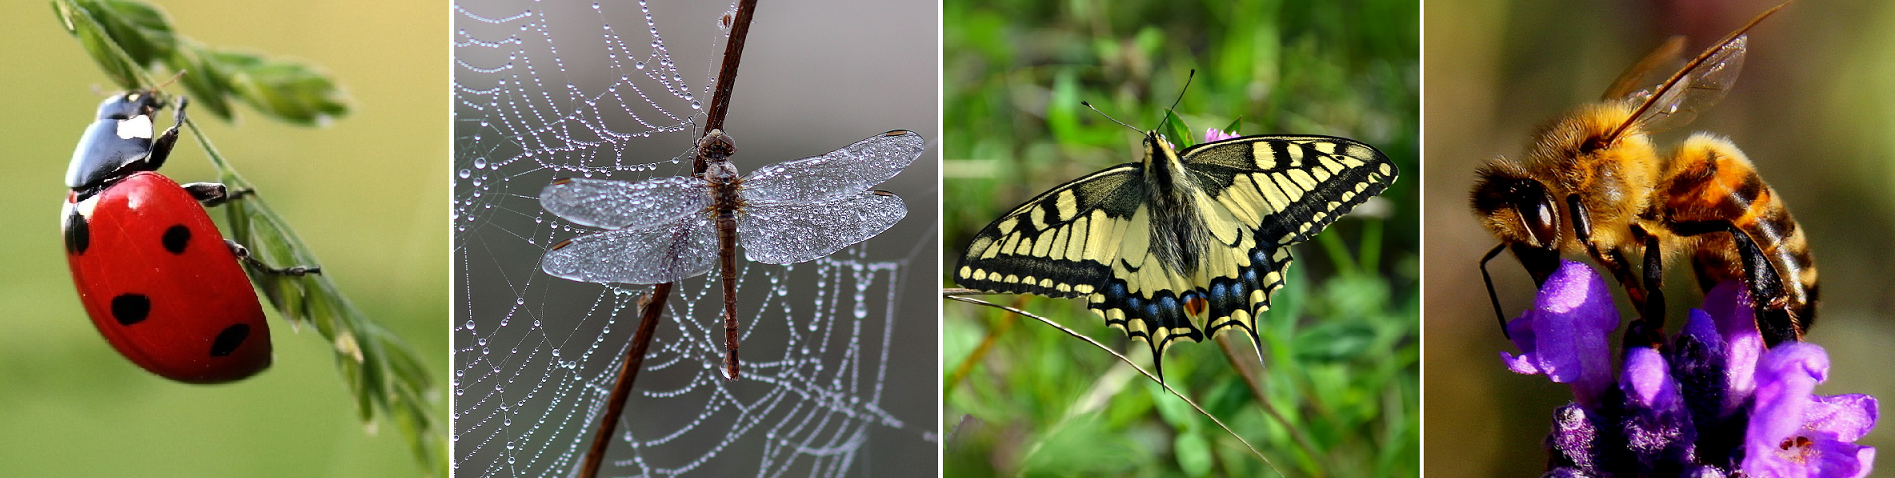 Biodiversity - ladybird, dragonfly, butterfly, bee